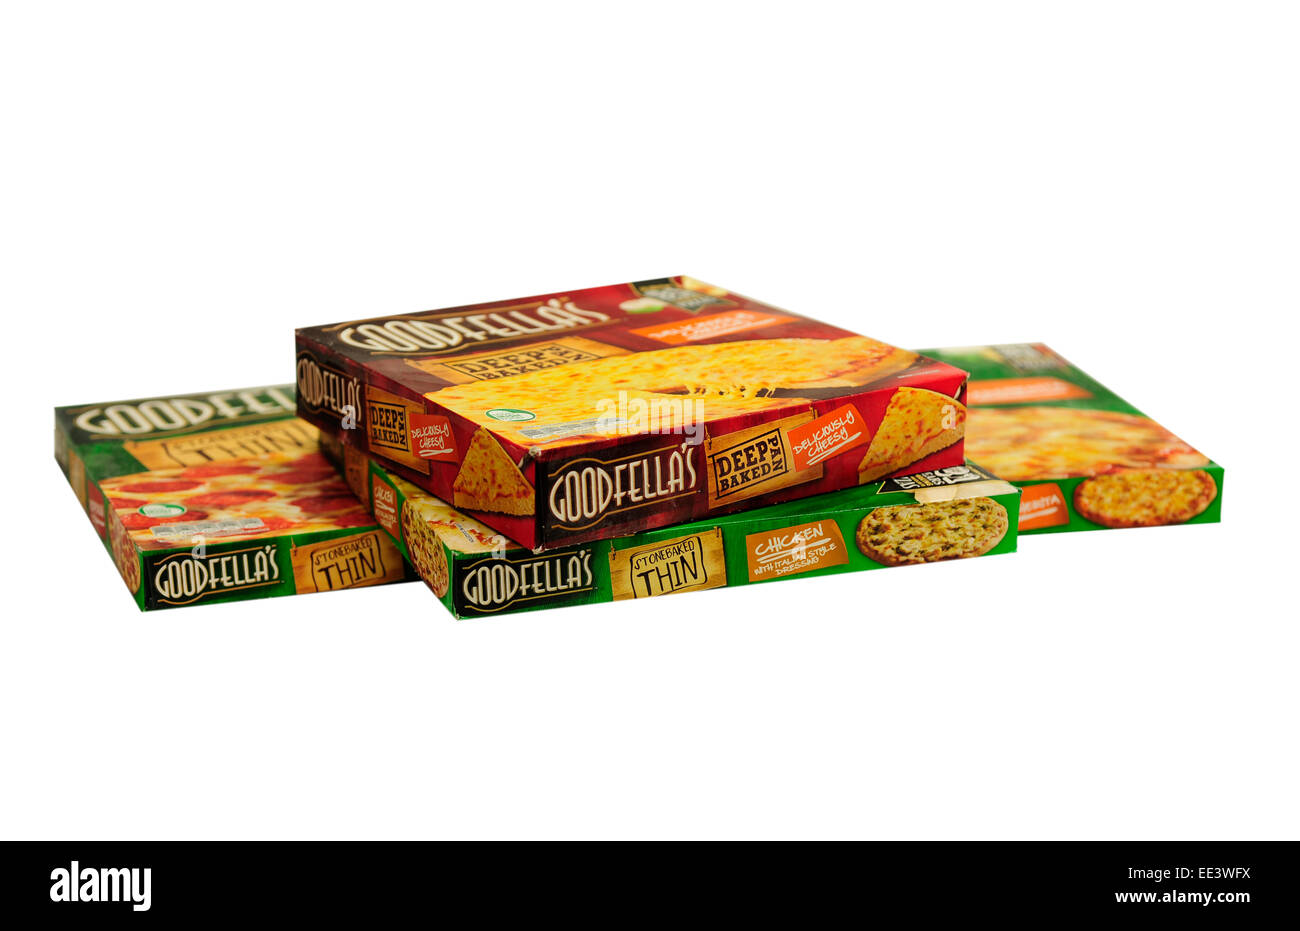 Close up of  Goodfellas Pizzas - Stock Image